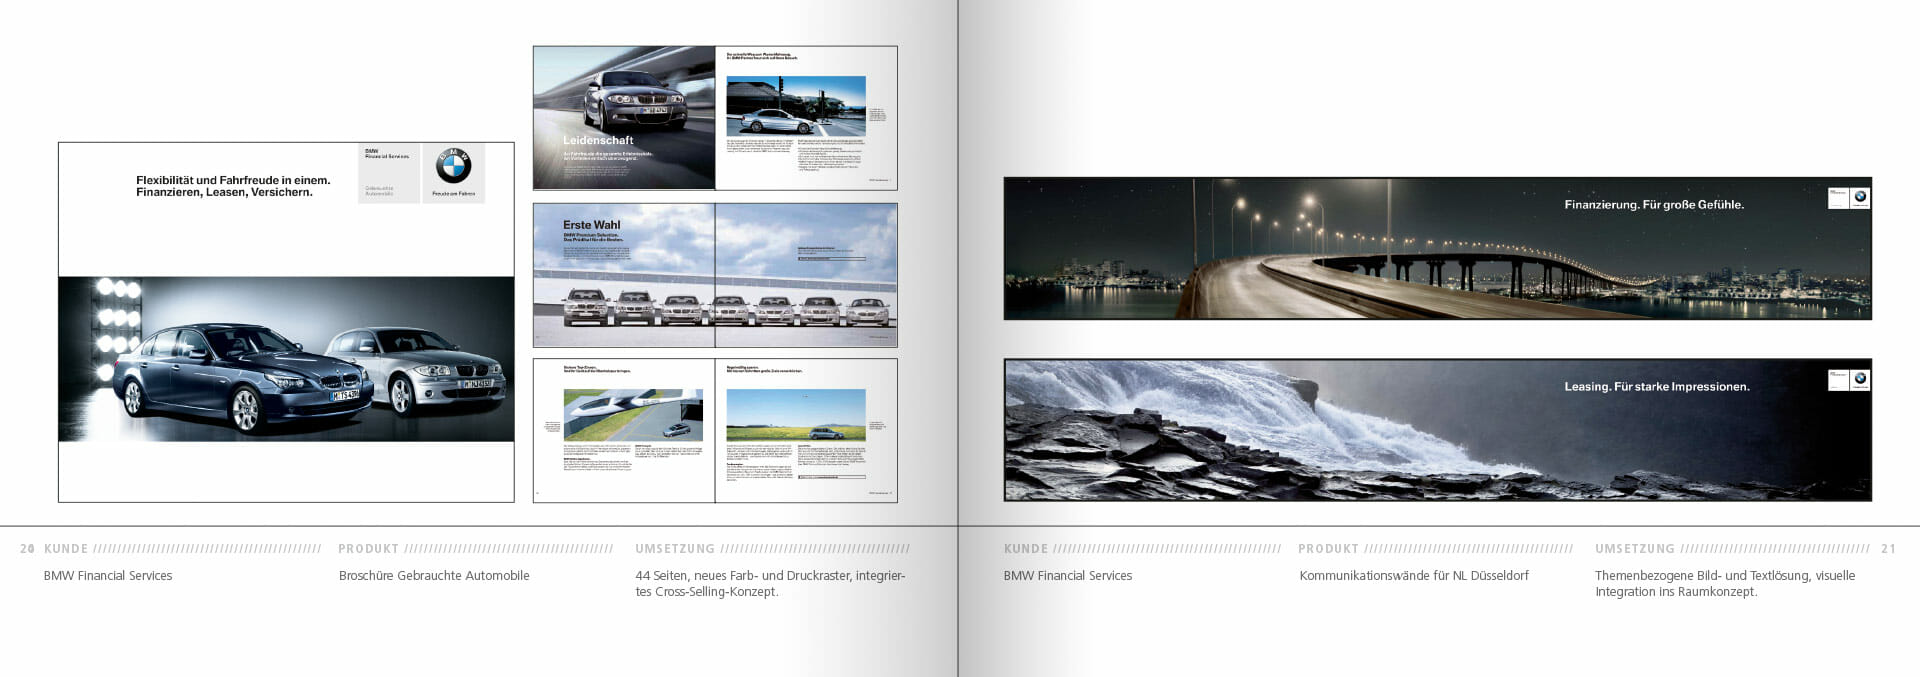 BMW Group Works 2001-2009 Booklet 20-21